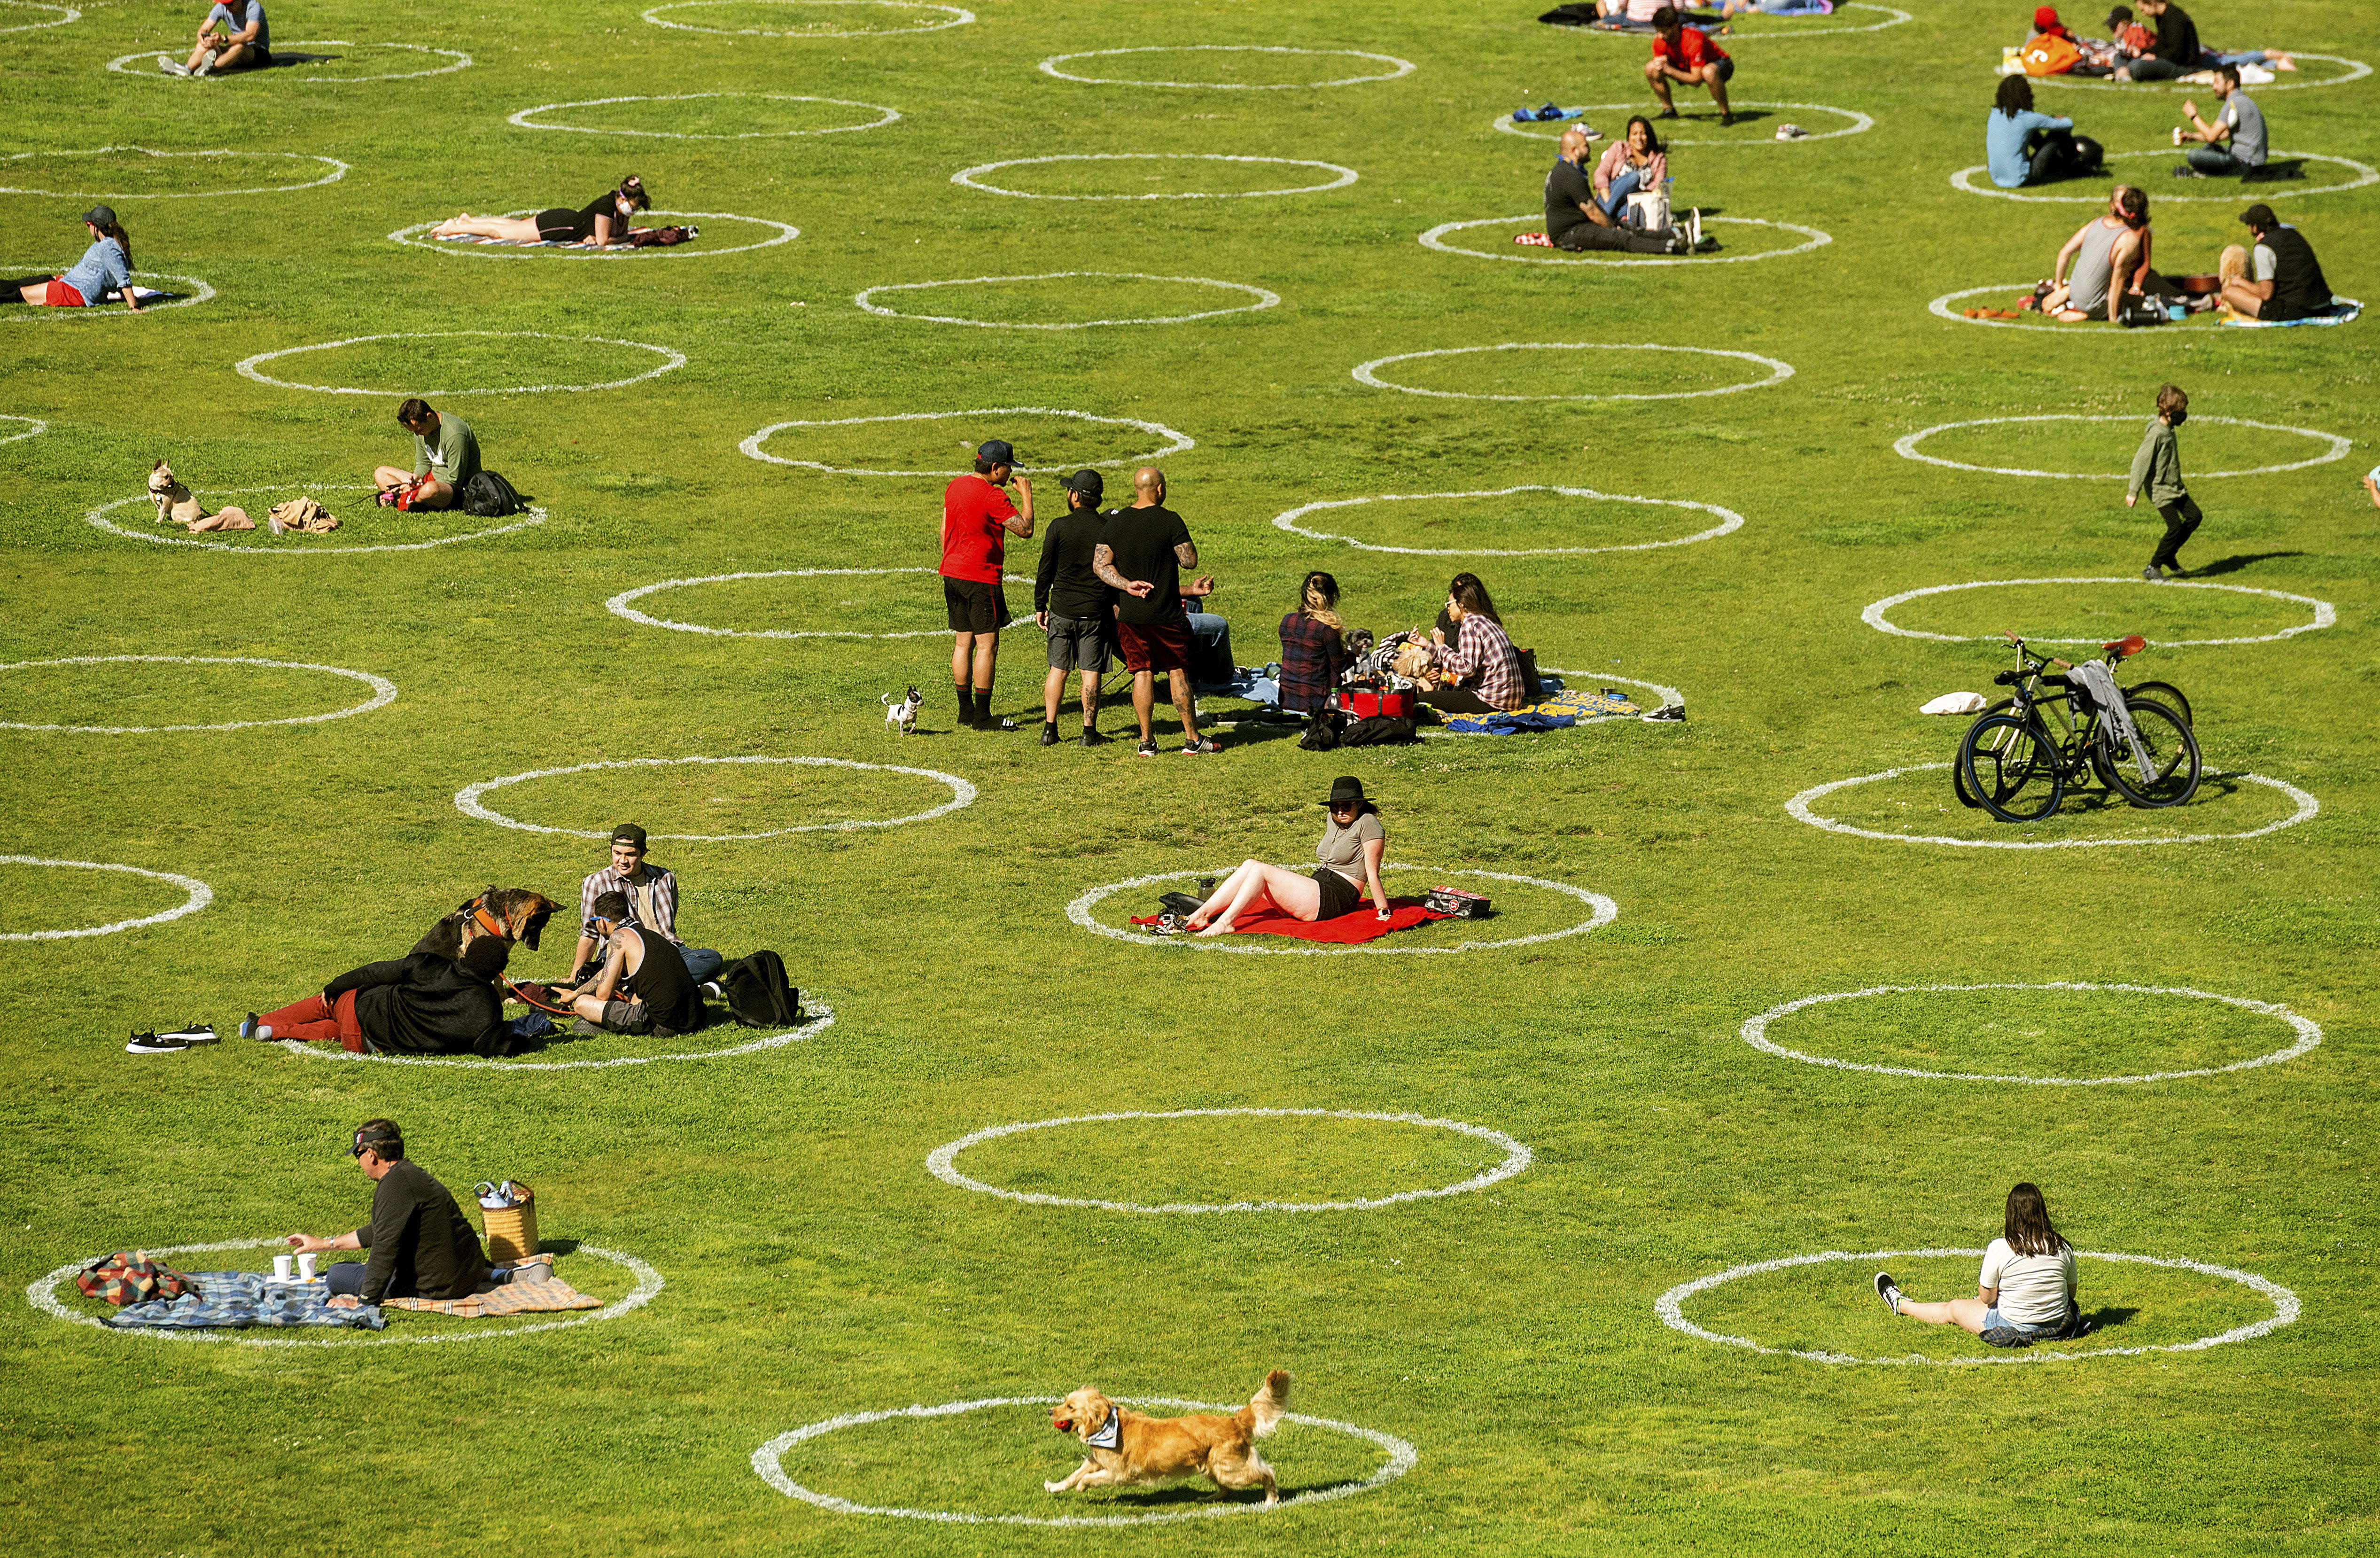 Circles designed to help prevent the spread of the coronavirus by encouraging social distancing line San Francisco's Dolores Park, Thursday, May 21, 2020. (AP Photo/Noah Berger)